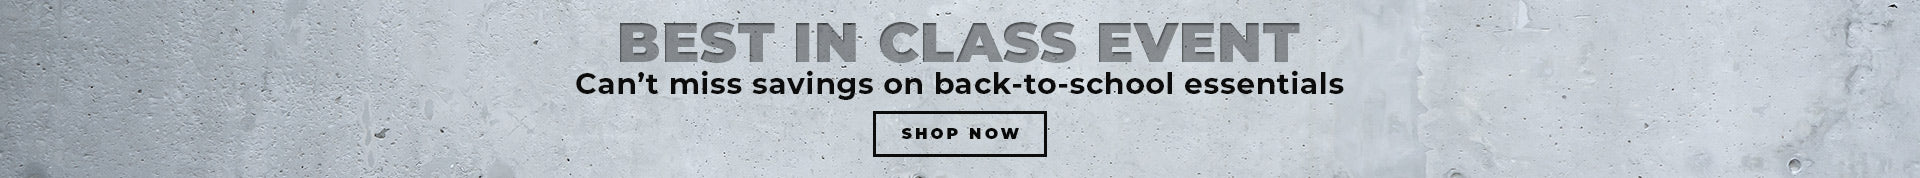 BEST IN CLASS EVENT- SHOP NOW